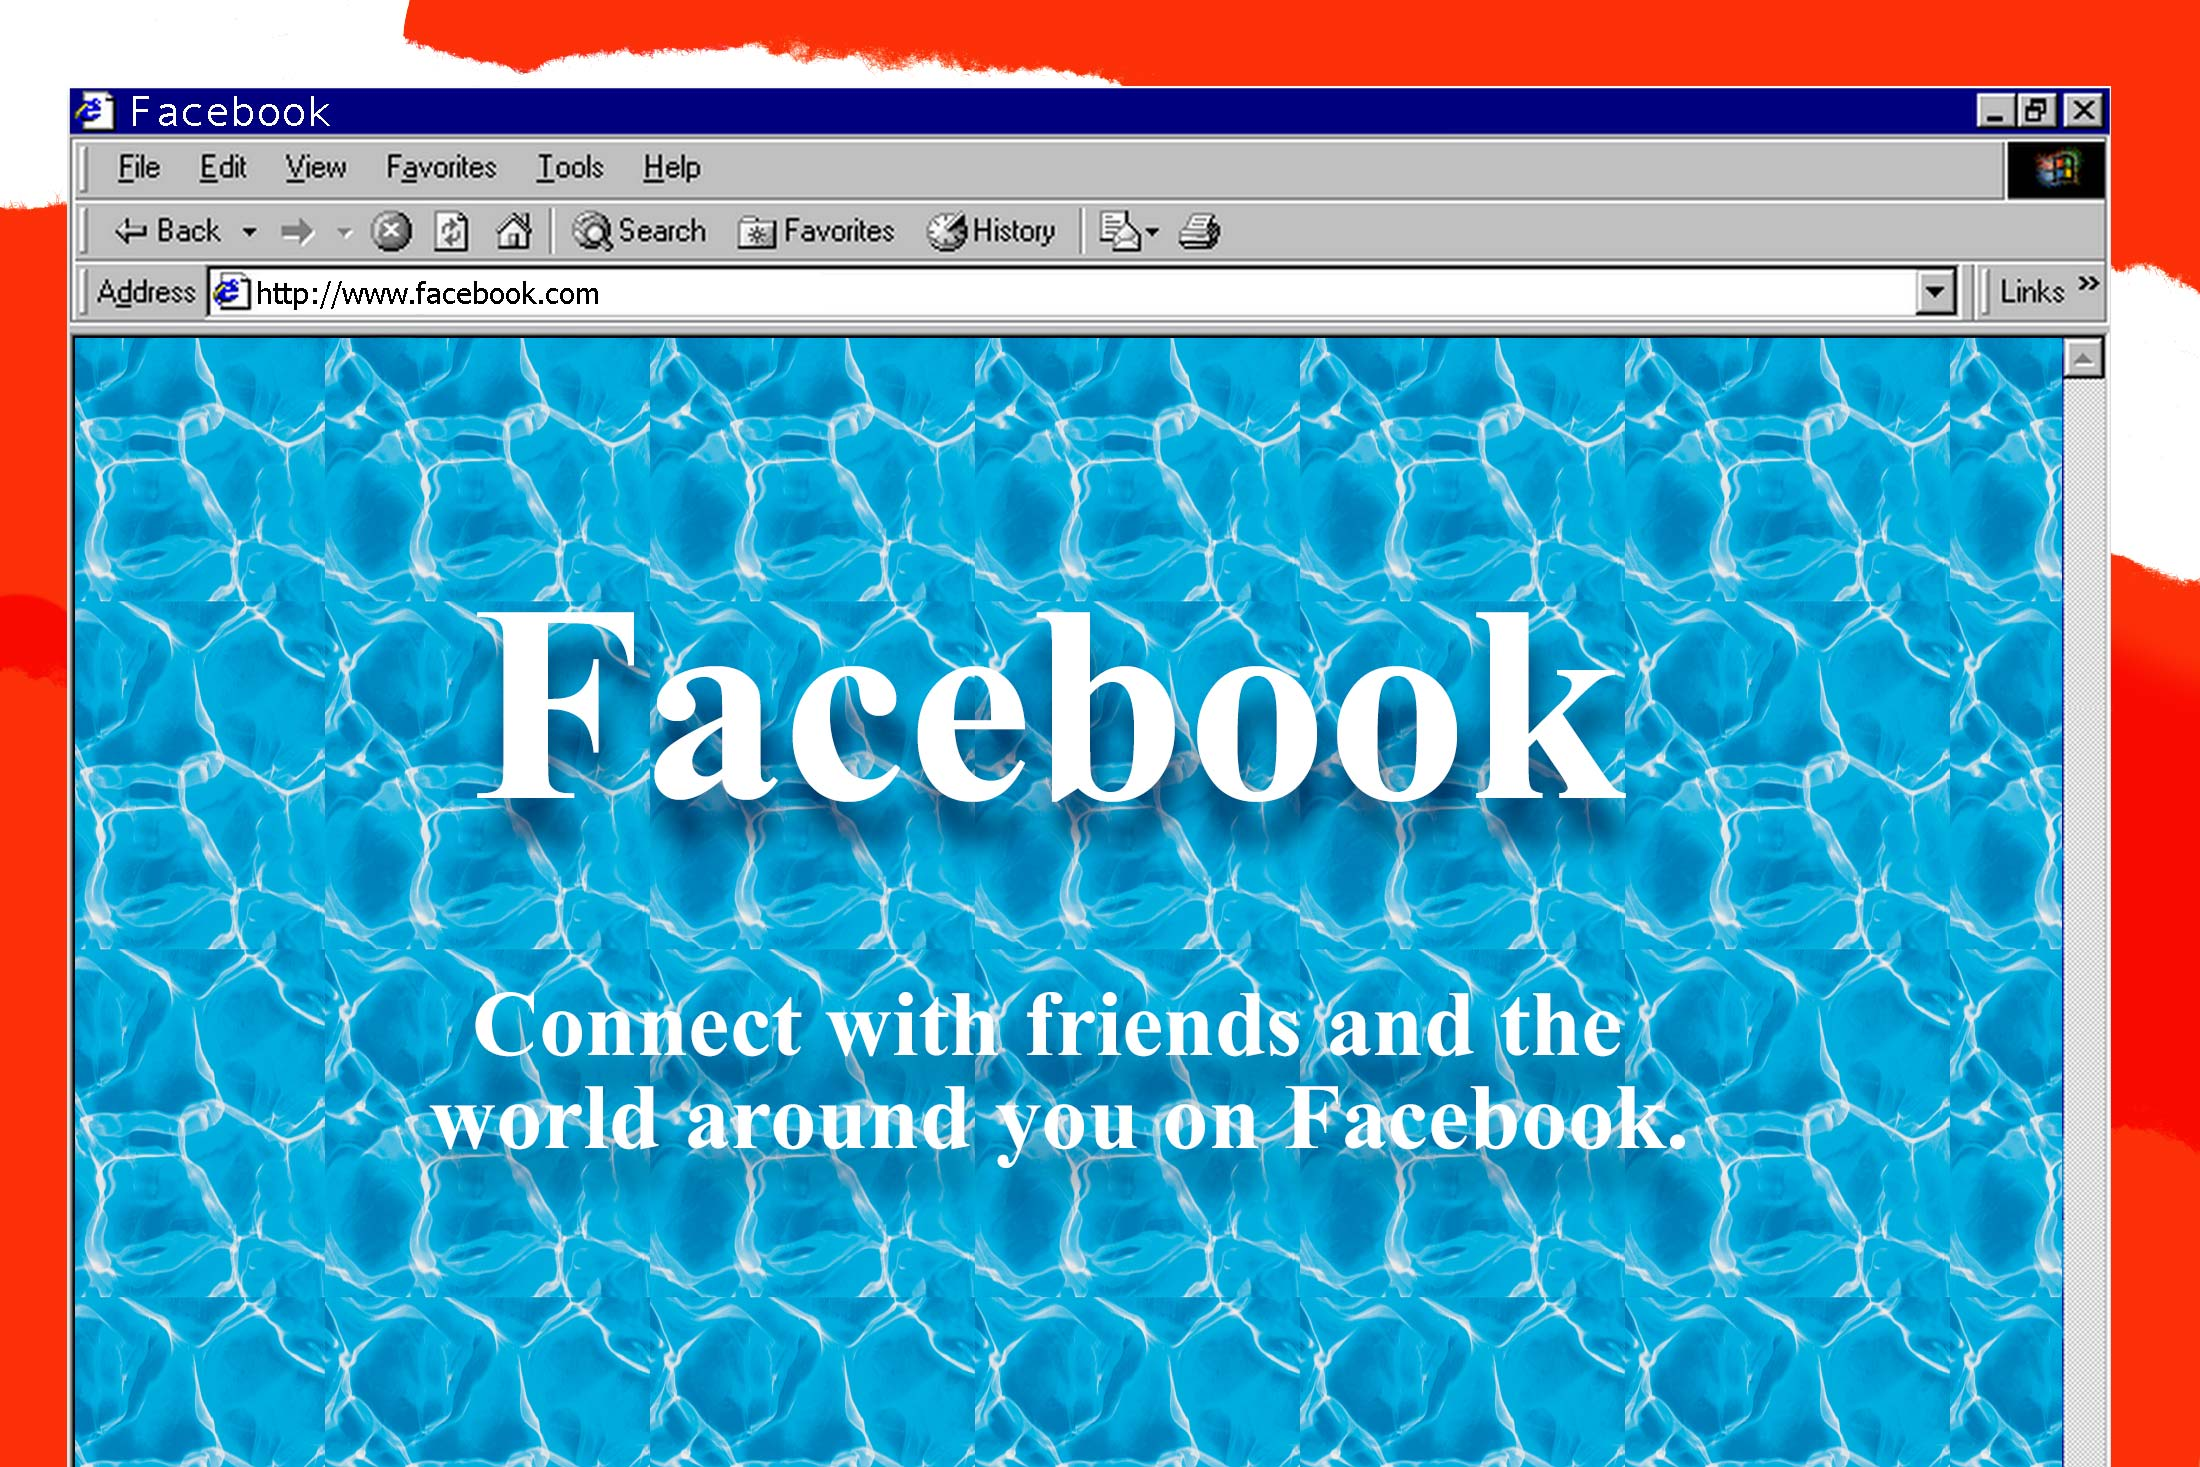 Facebook home page styled to look like a GeoCities site.